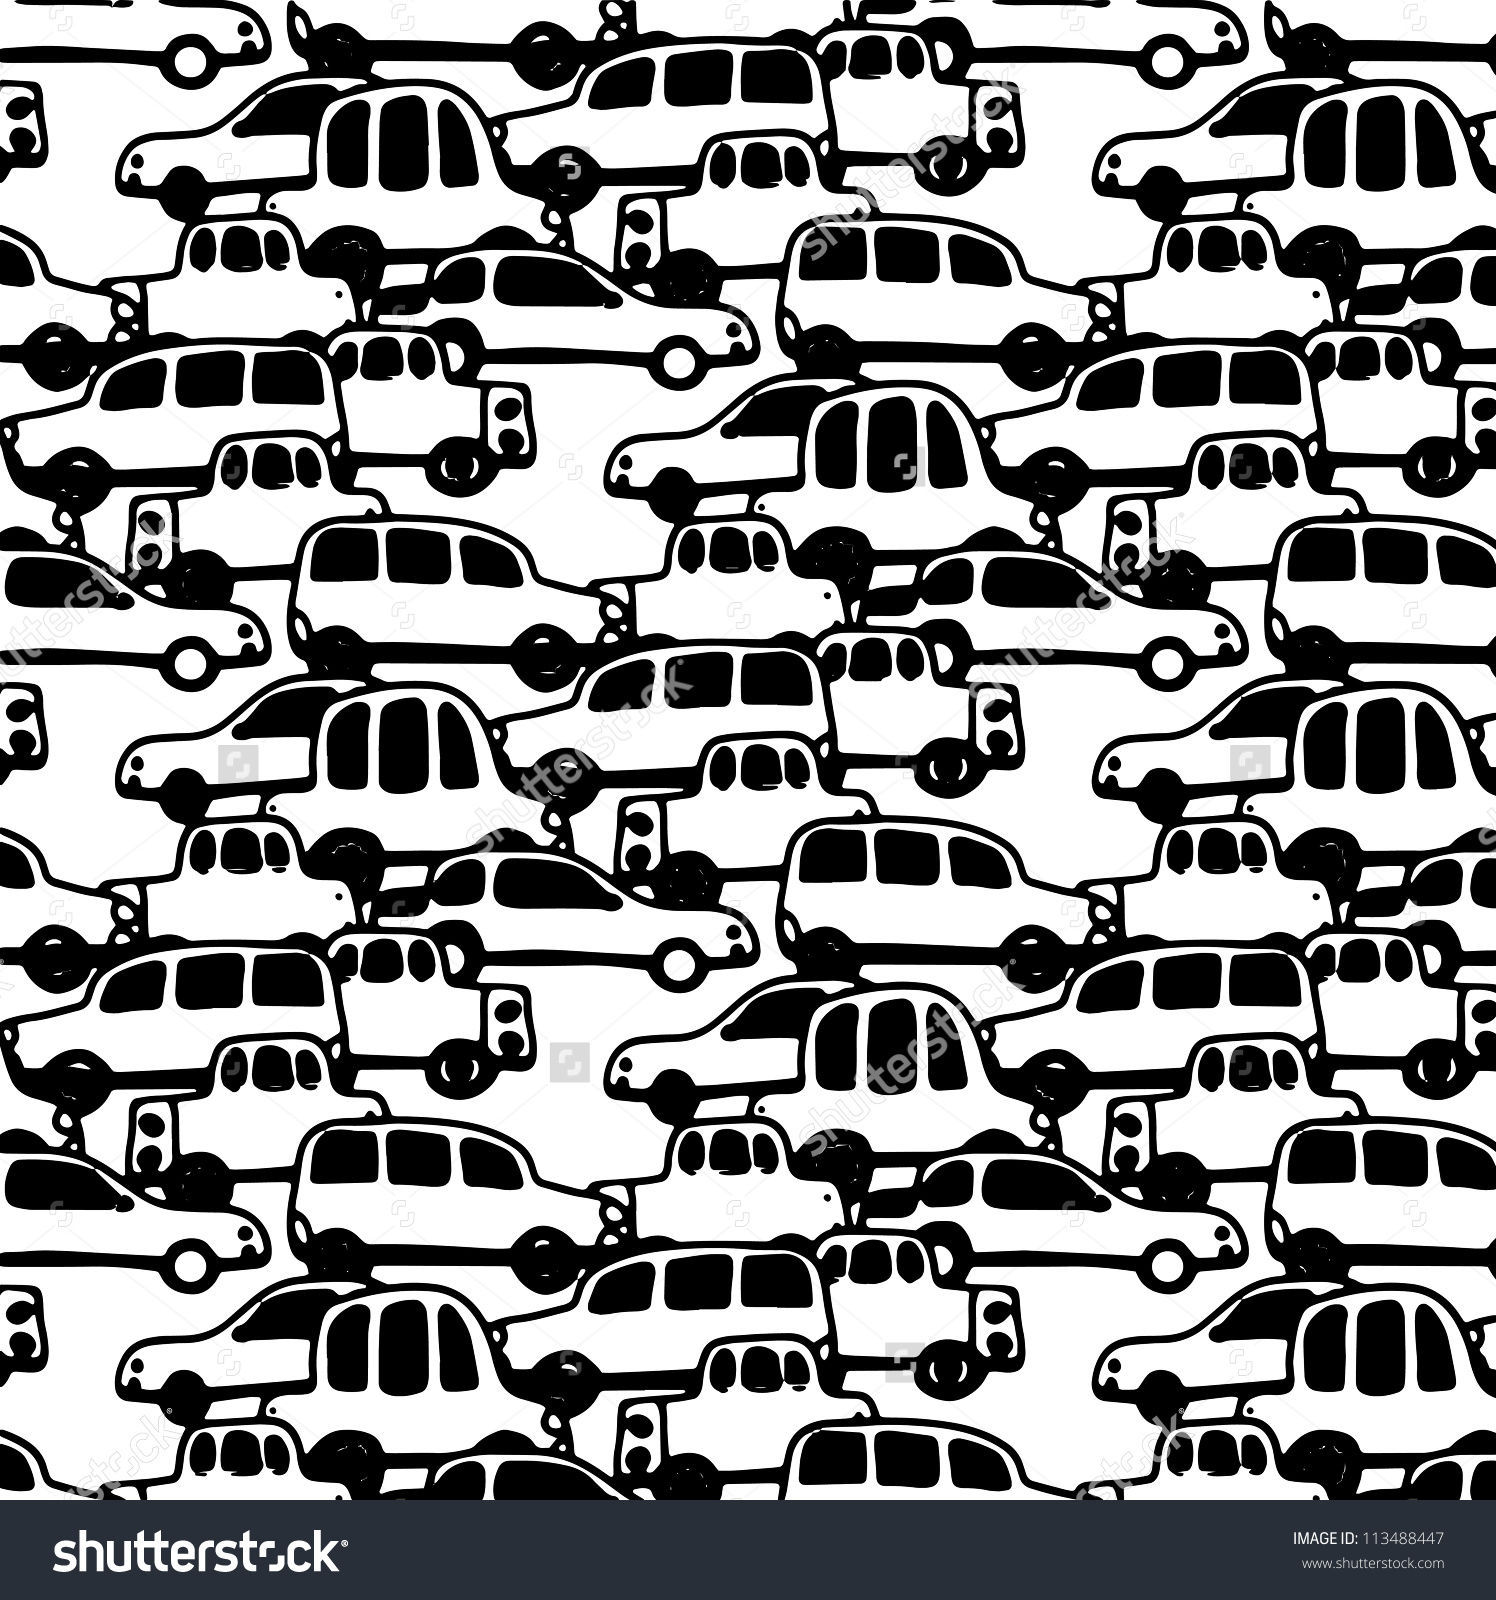 Free Traffic Jam Cliparts, Download Free Clip Art, Free Clip.